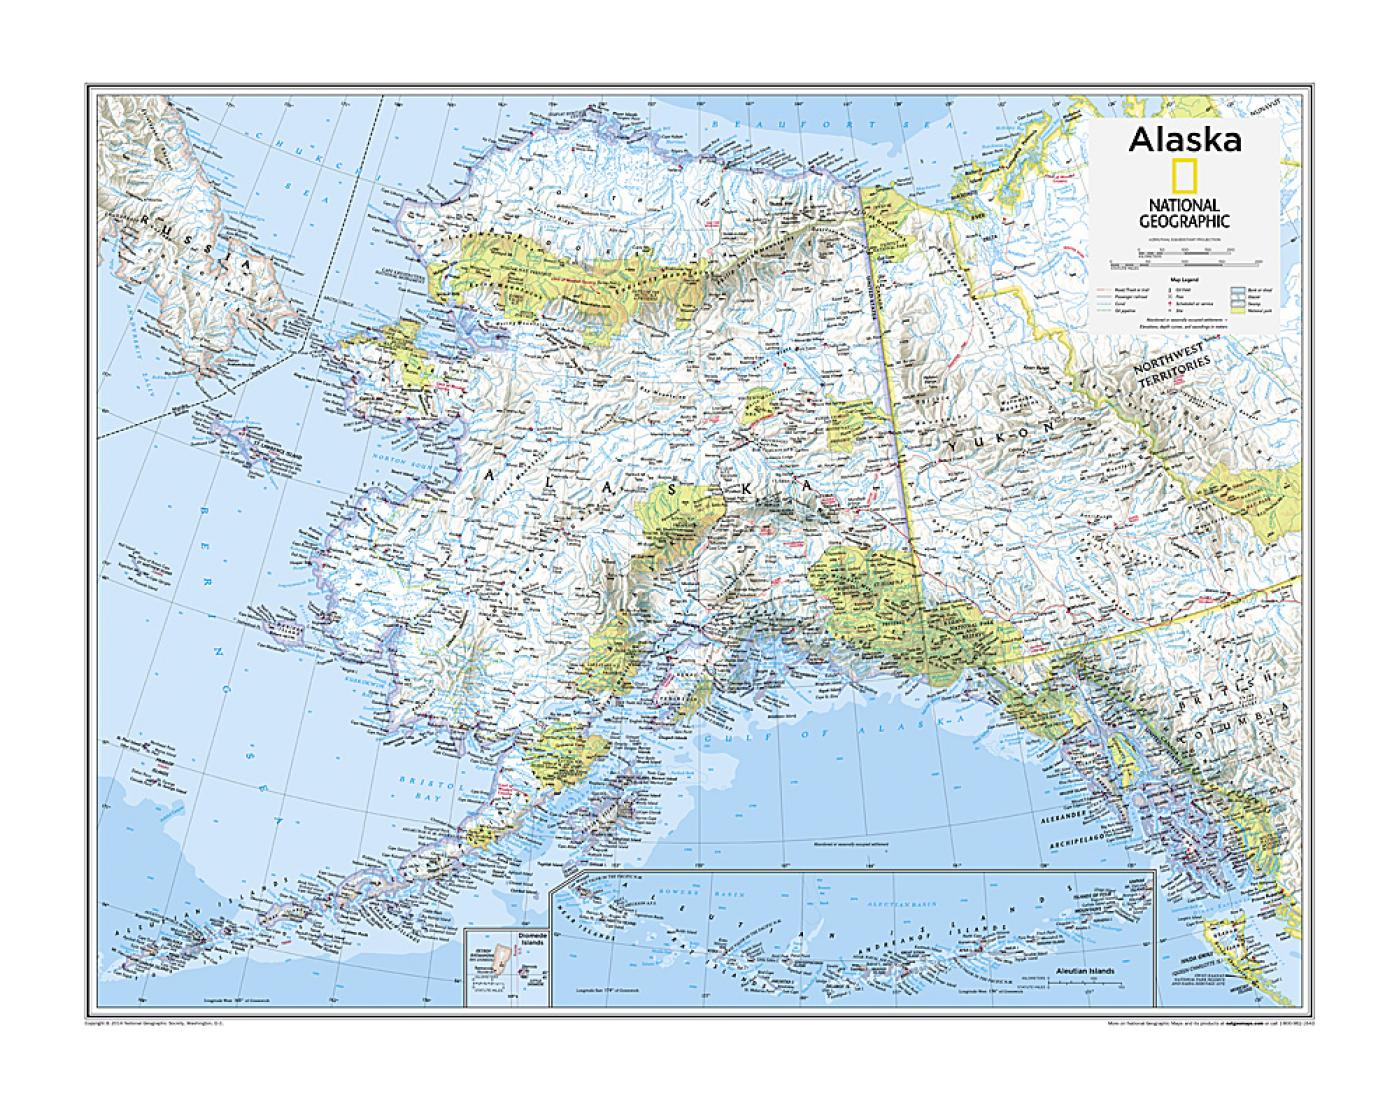 Alaska - Map from National Geographic Atlas of the World 10th Edition on topographical map, geologic map, genetic map, topological map, maps map, personal map, business map, geographical map, statistical map, world map, physical map, early world maps, physical geography, science map, aerial photography, geographic information system, geographic coordinate system, human geography, egypt map, weather map, topographic map, costa blanca spain map, history map, spatial analysis, earth remote sensing, national map, thematic map, international map, map projection, contour line,